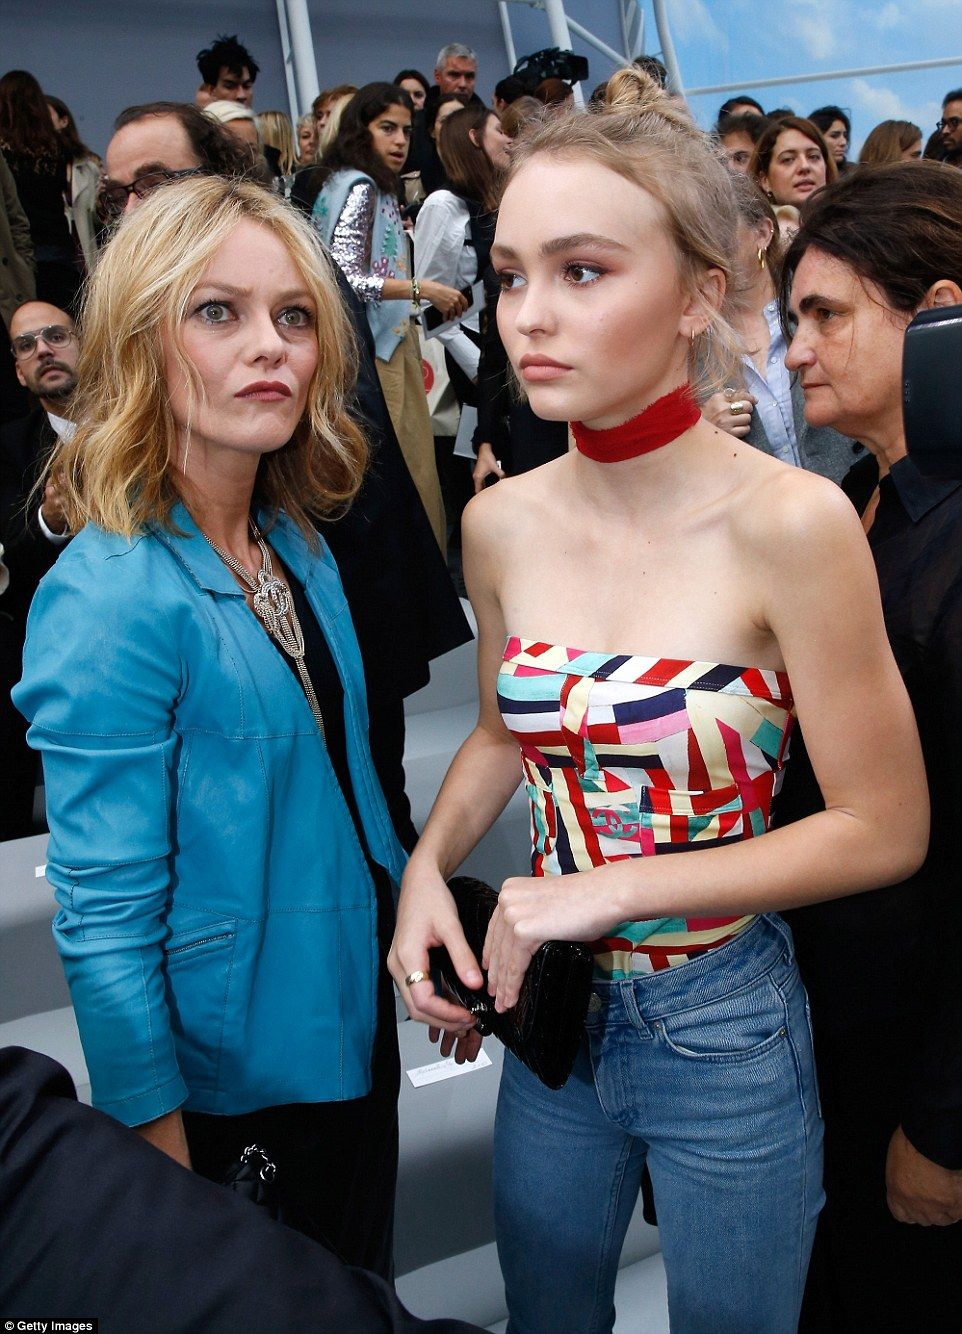 Arte Concert Vanessa Paradis Lily Rose Depp 16 Oozes Carefree Model Vibes At Chanel Pfw Show